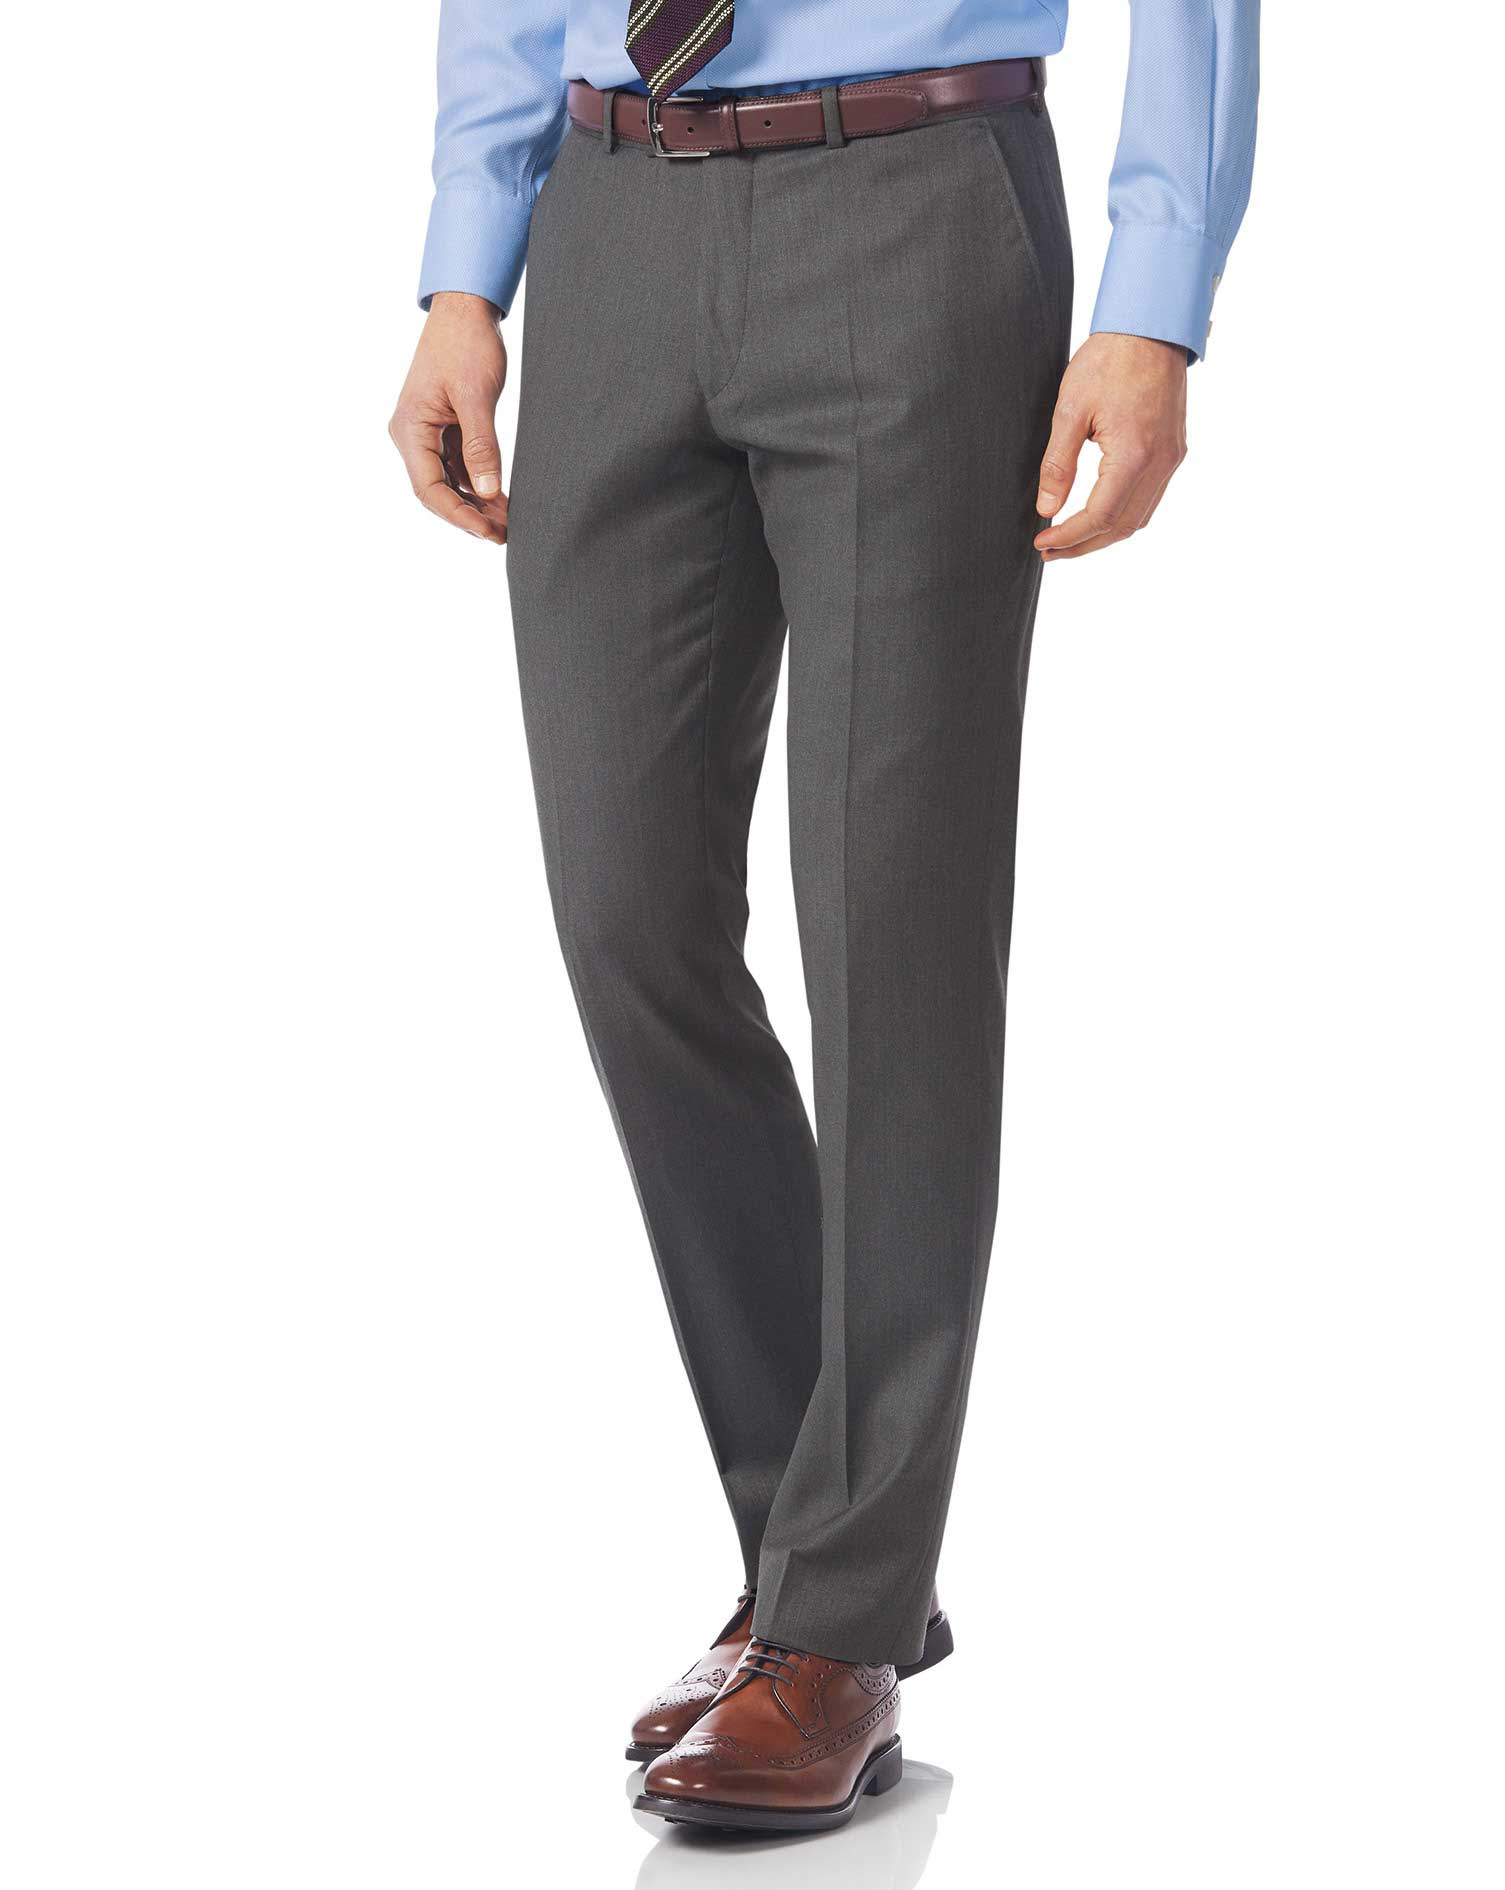 Grey slim fit Italian twill luxury suit pants